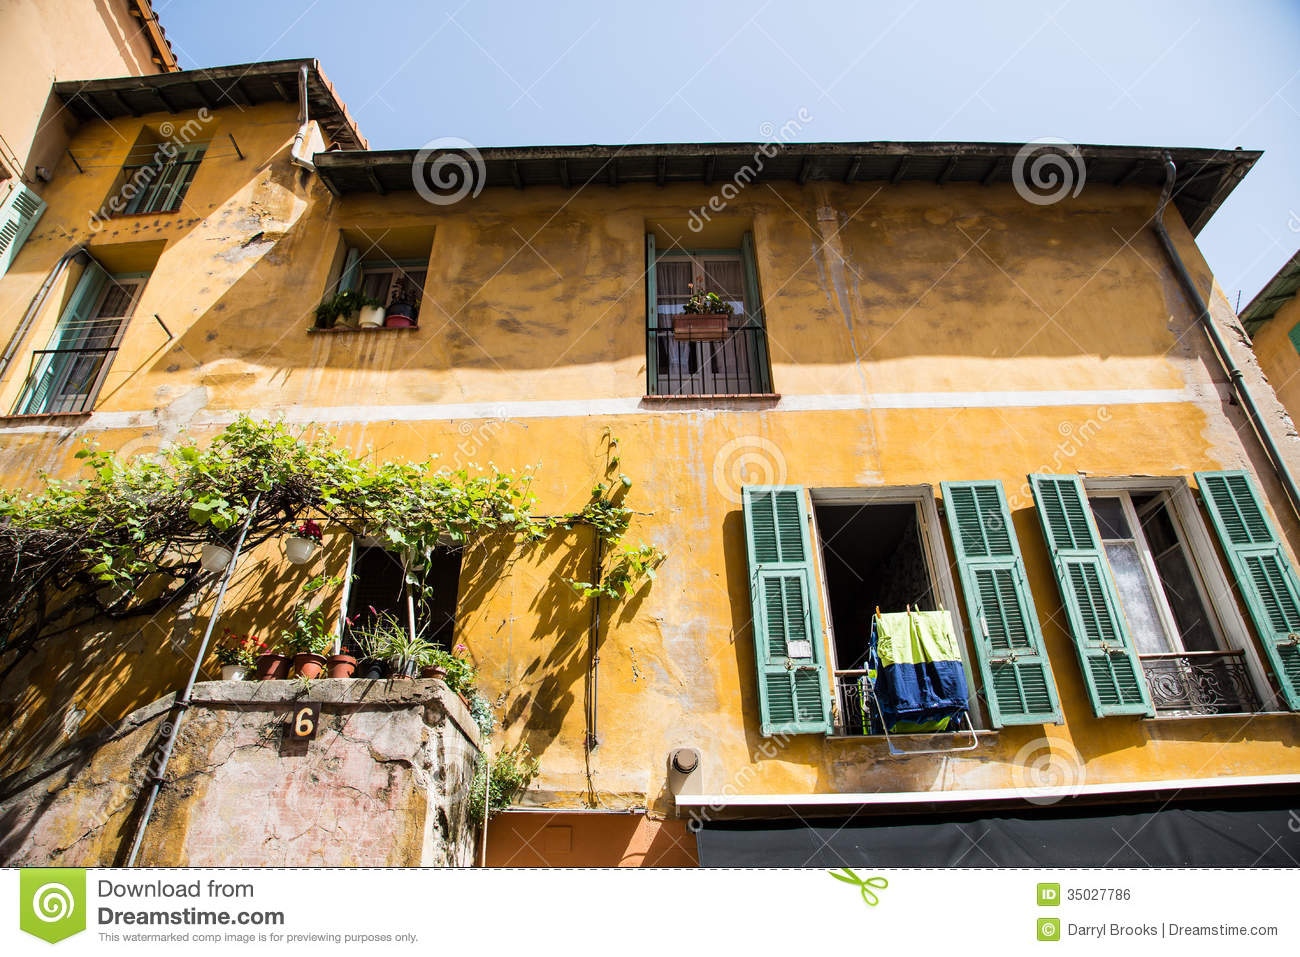 Green Shutters On Open Windows Of Yellow Plaster Building